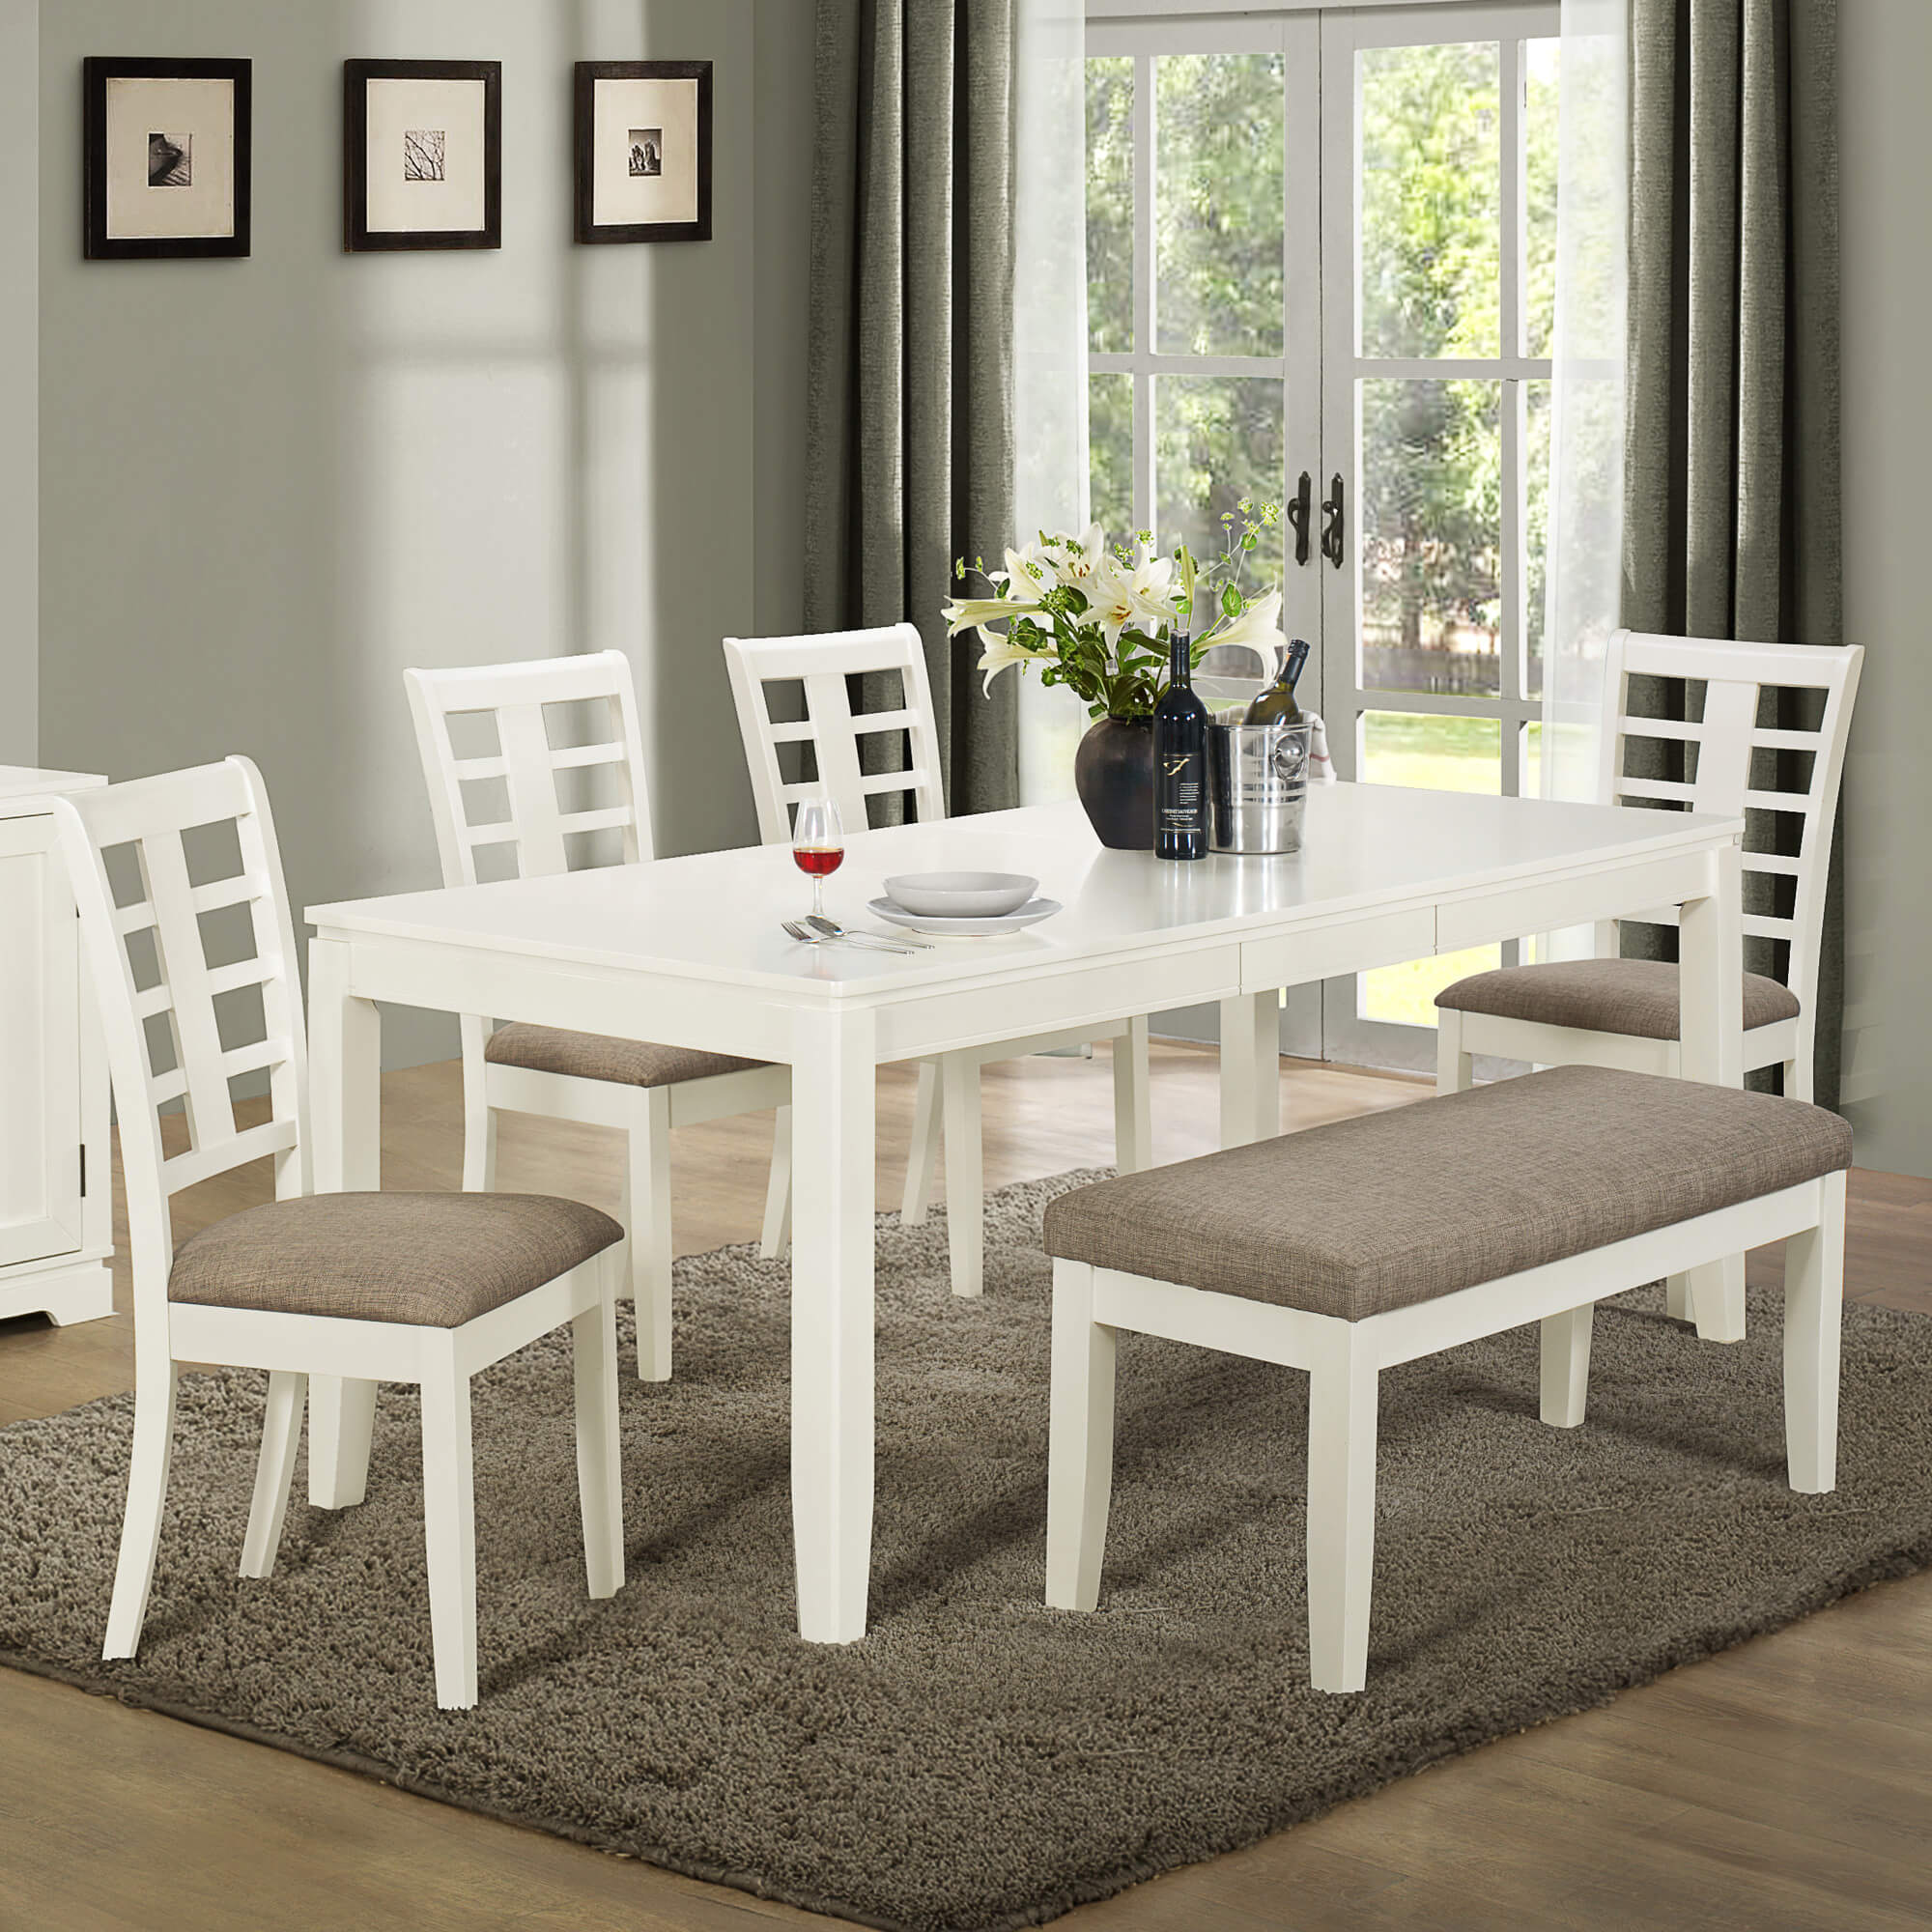 Built With Solid Wood And MDF Board This White Grey Dining Set Bench